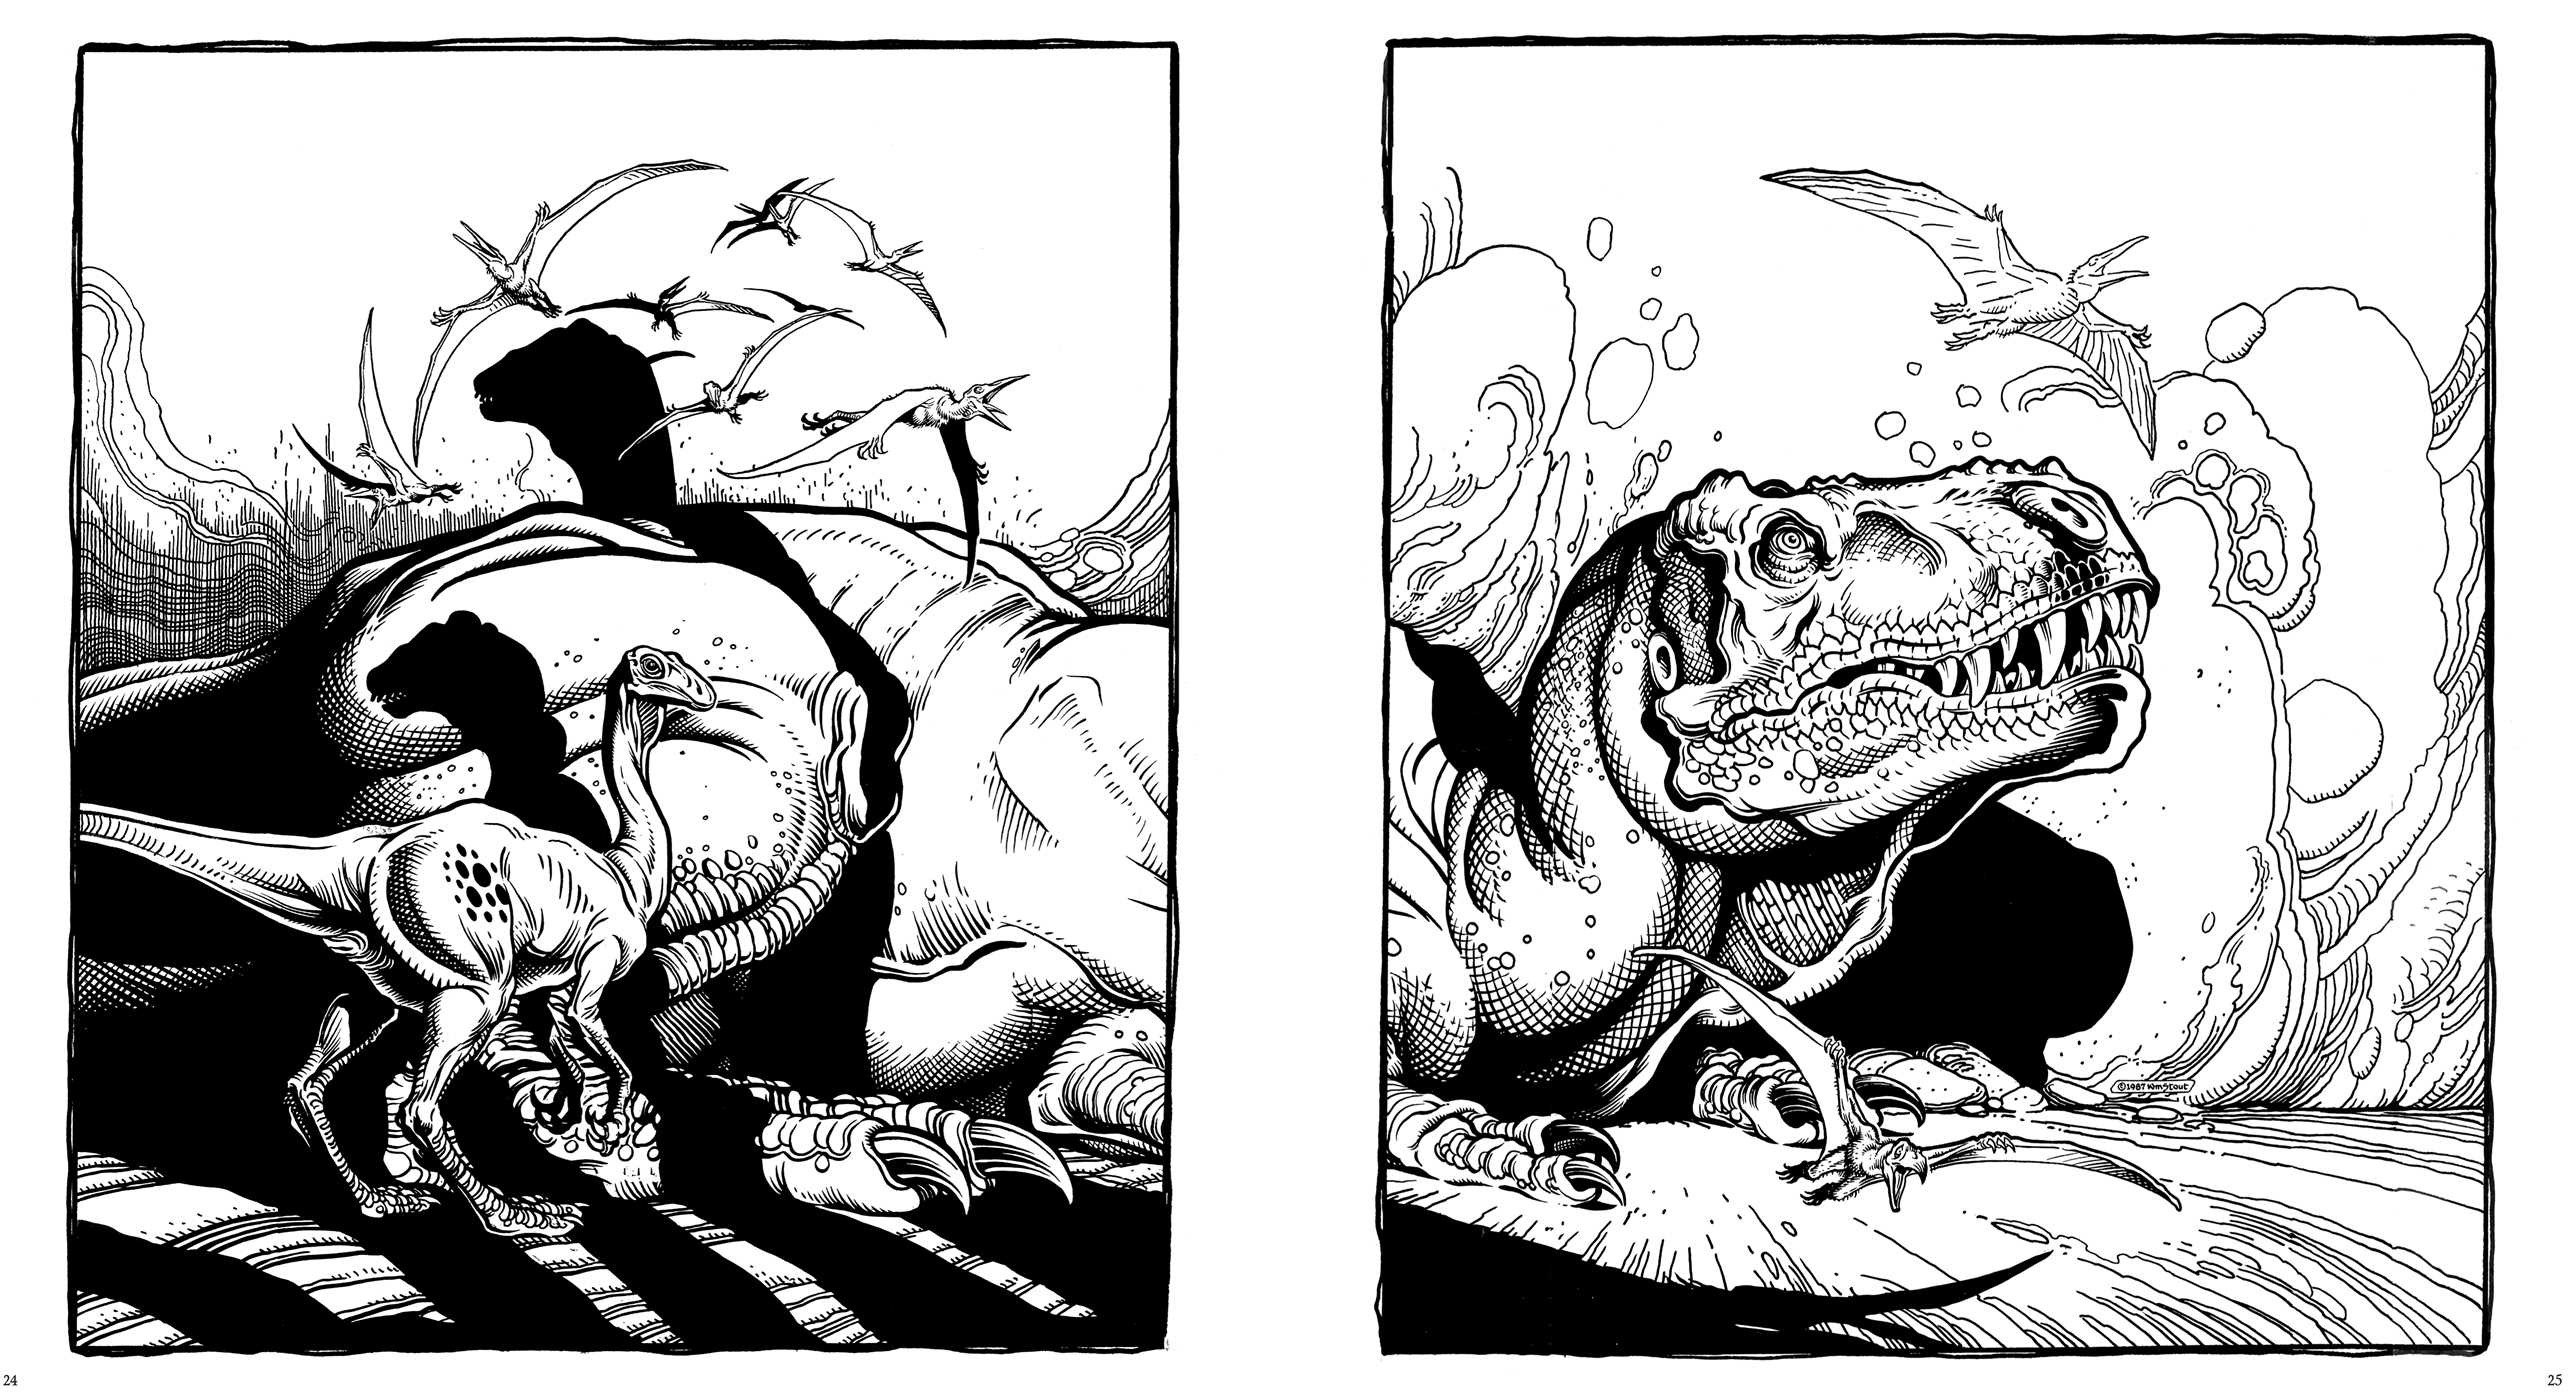 Dinosaurs: A Coloring Book by William Stout | Book by William ...